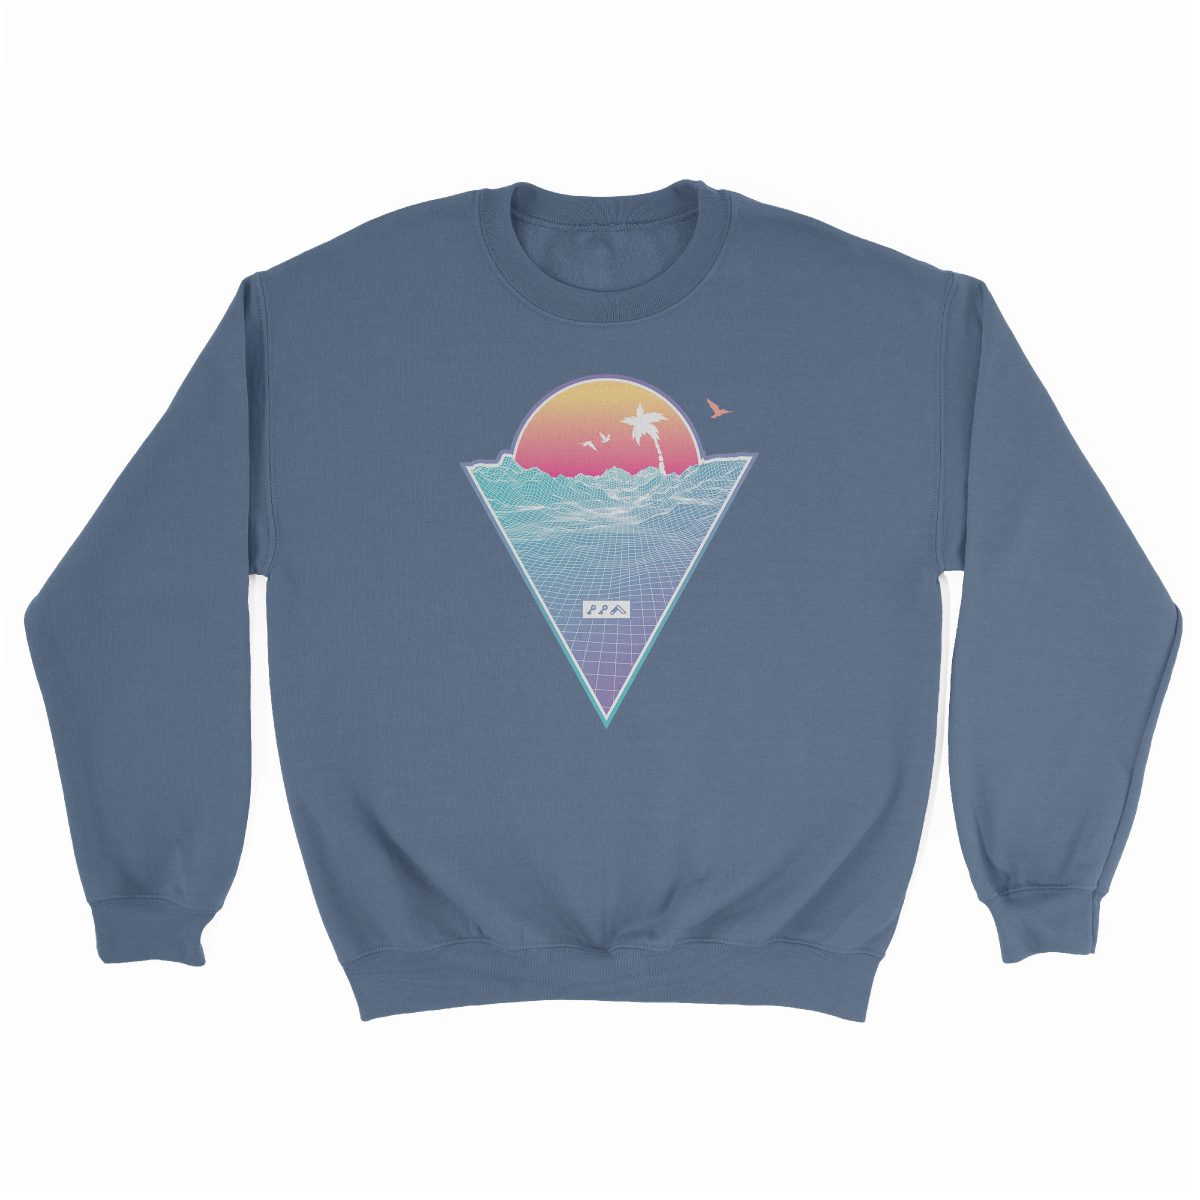 """OFF THE GRID"" cali vibes retro 80s design sweatshirt indigo at kikicutt.com"